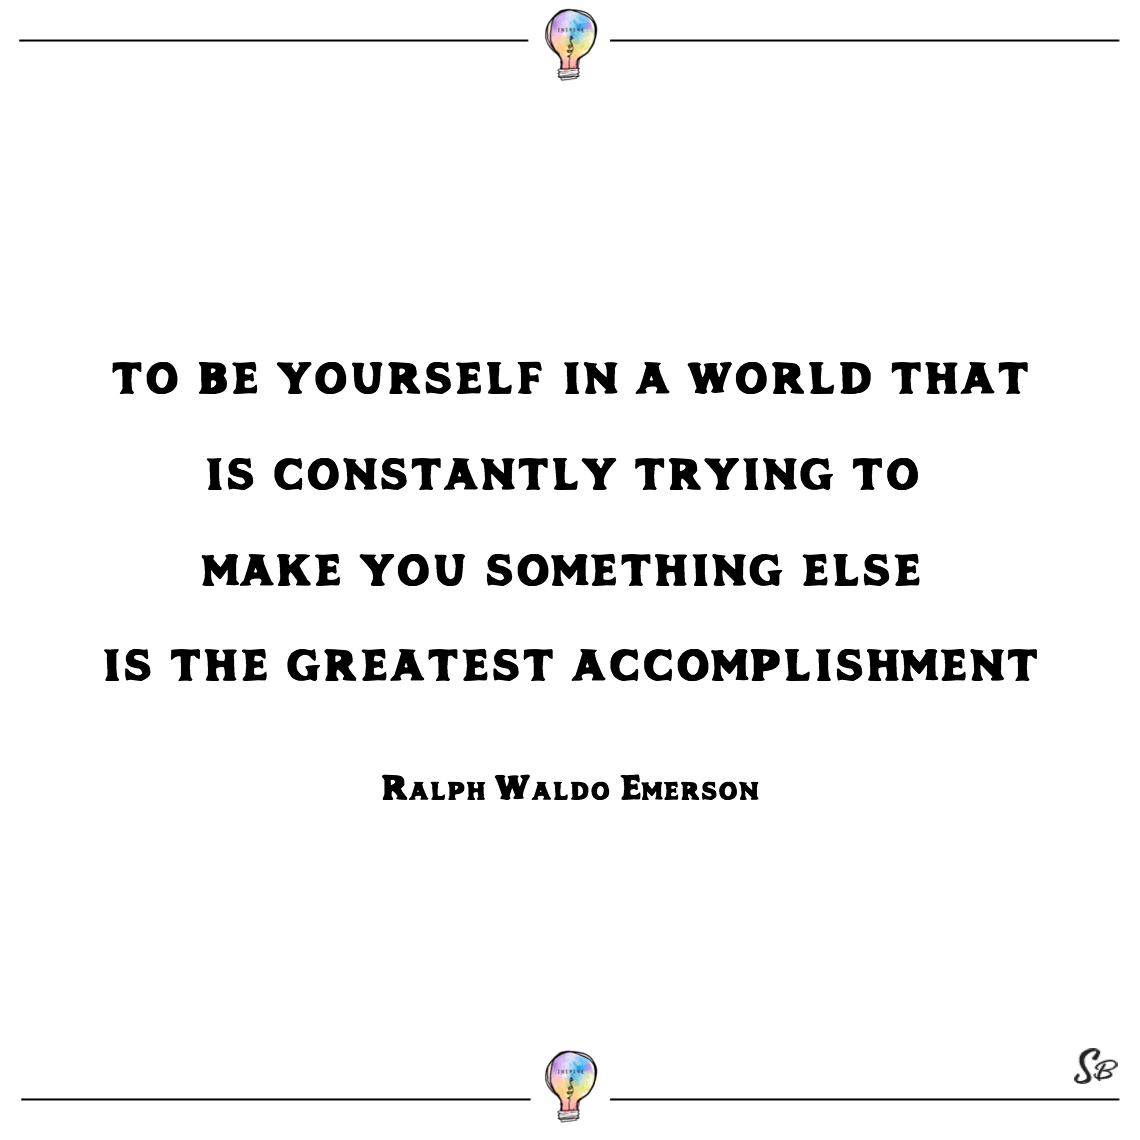 To be yourself in a world that is constantly trying to make you something else is the greatest accomplishment ralph waldo emerson confidence inspiring quotes